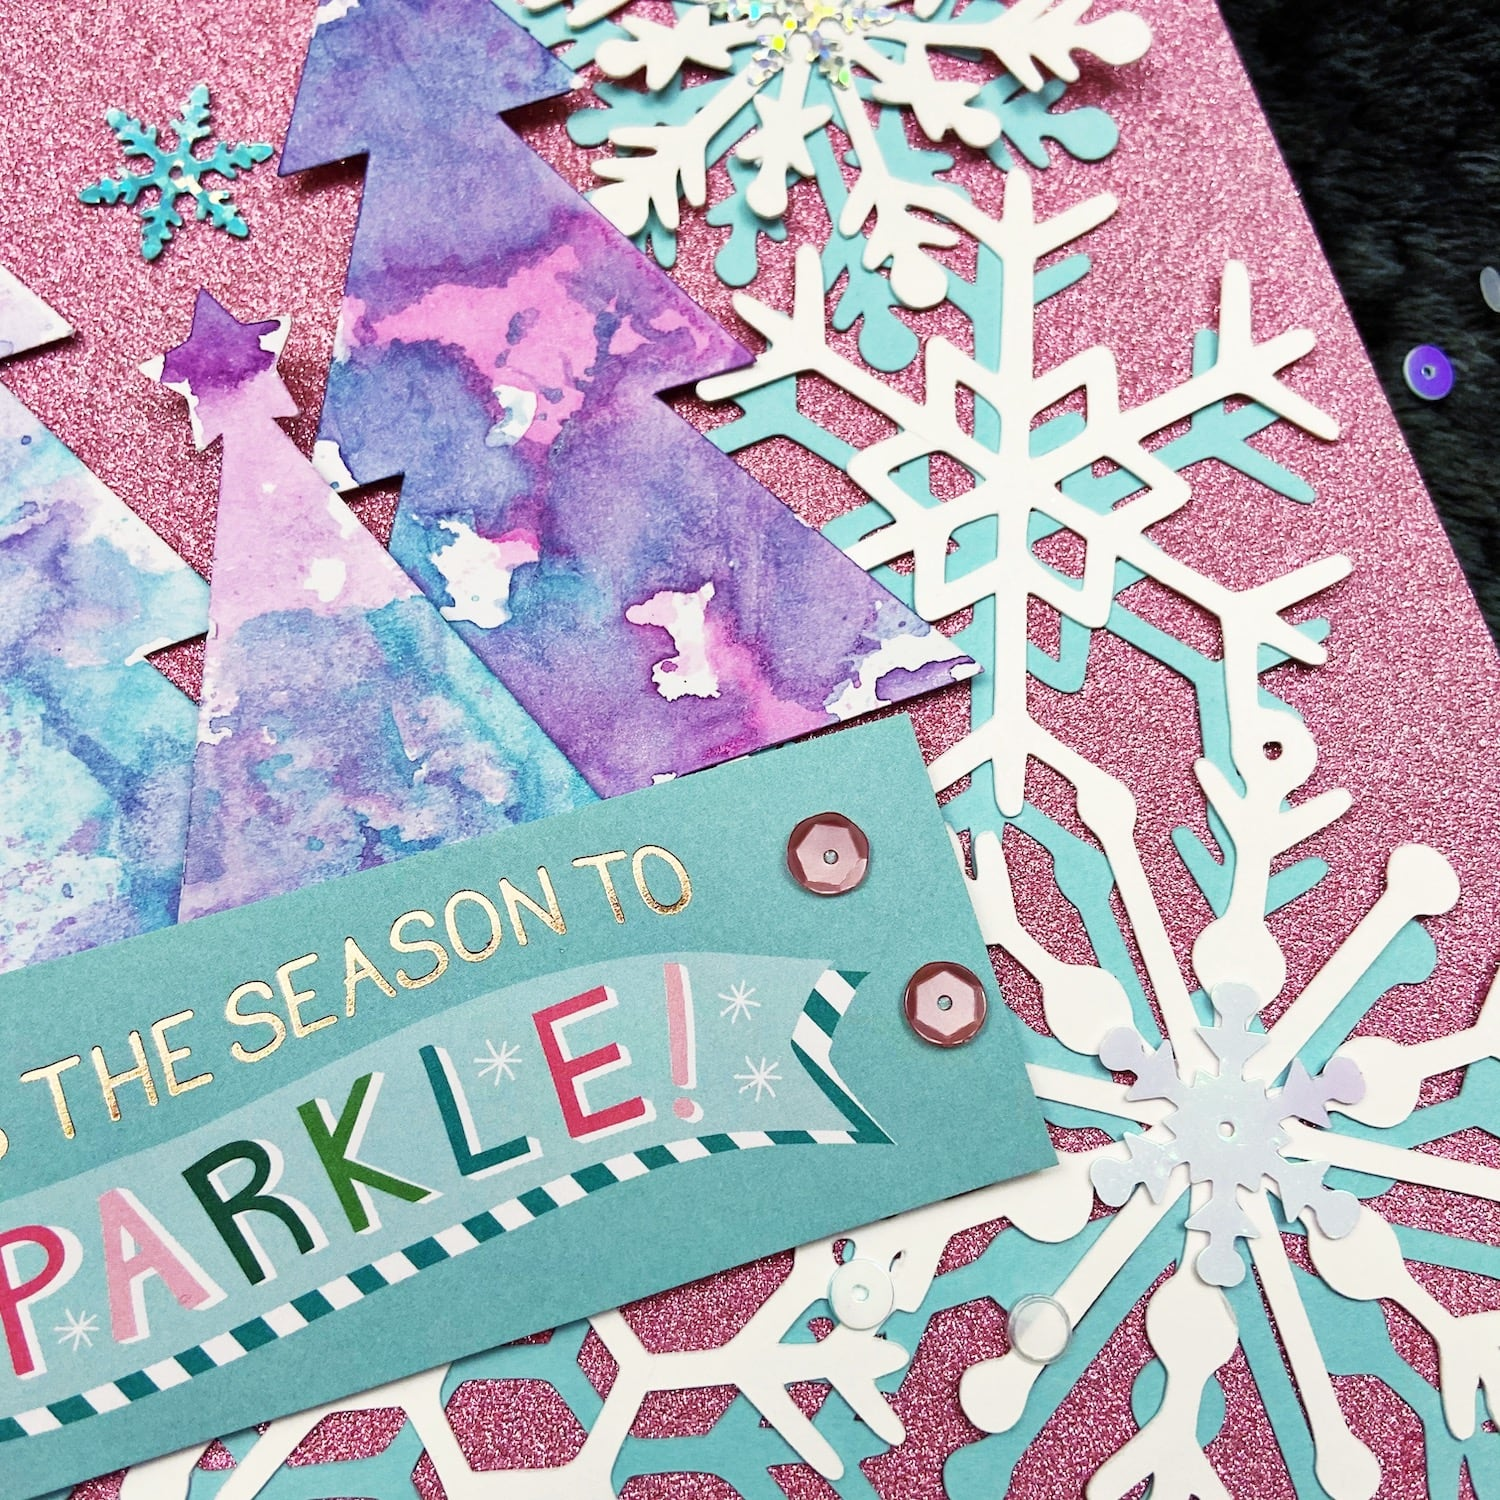 Homemade embellishments on snowflake scrapbook layout